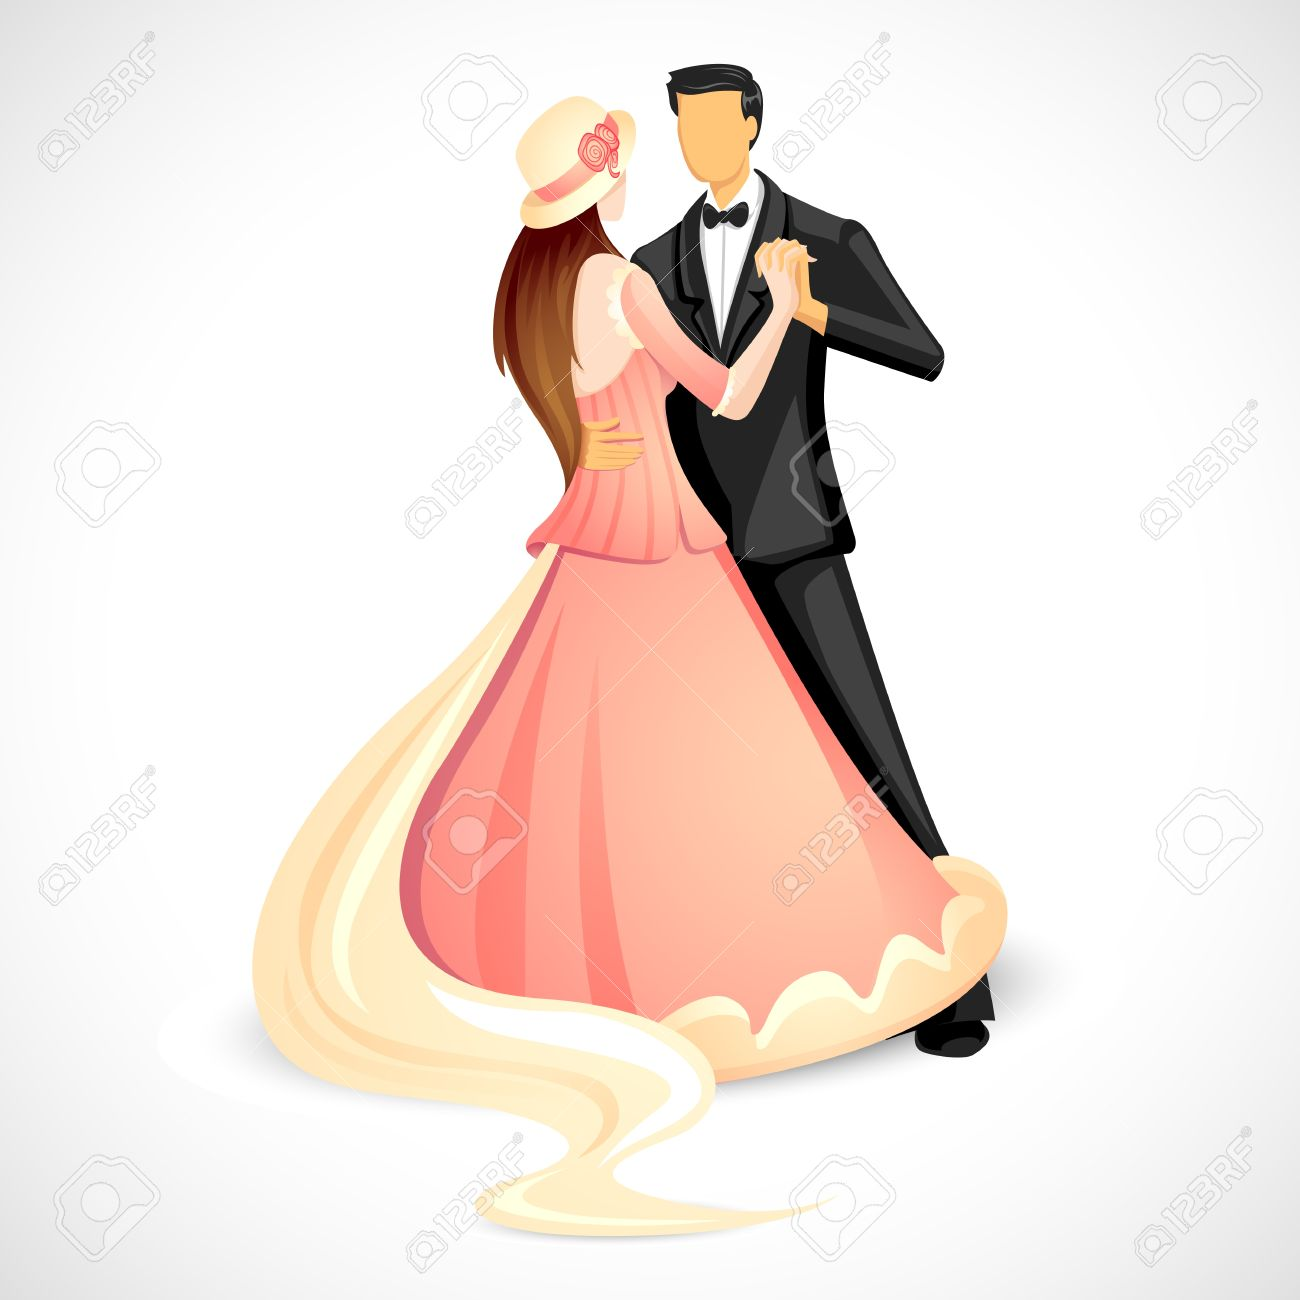 Newly Wed Couple Clipart.